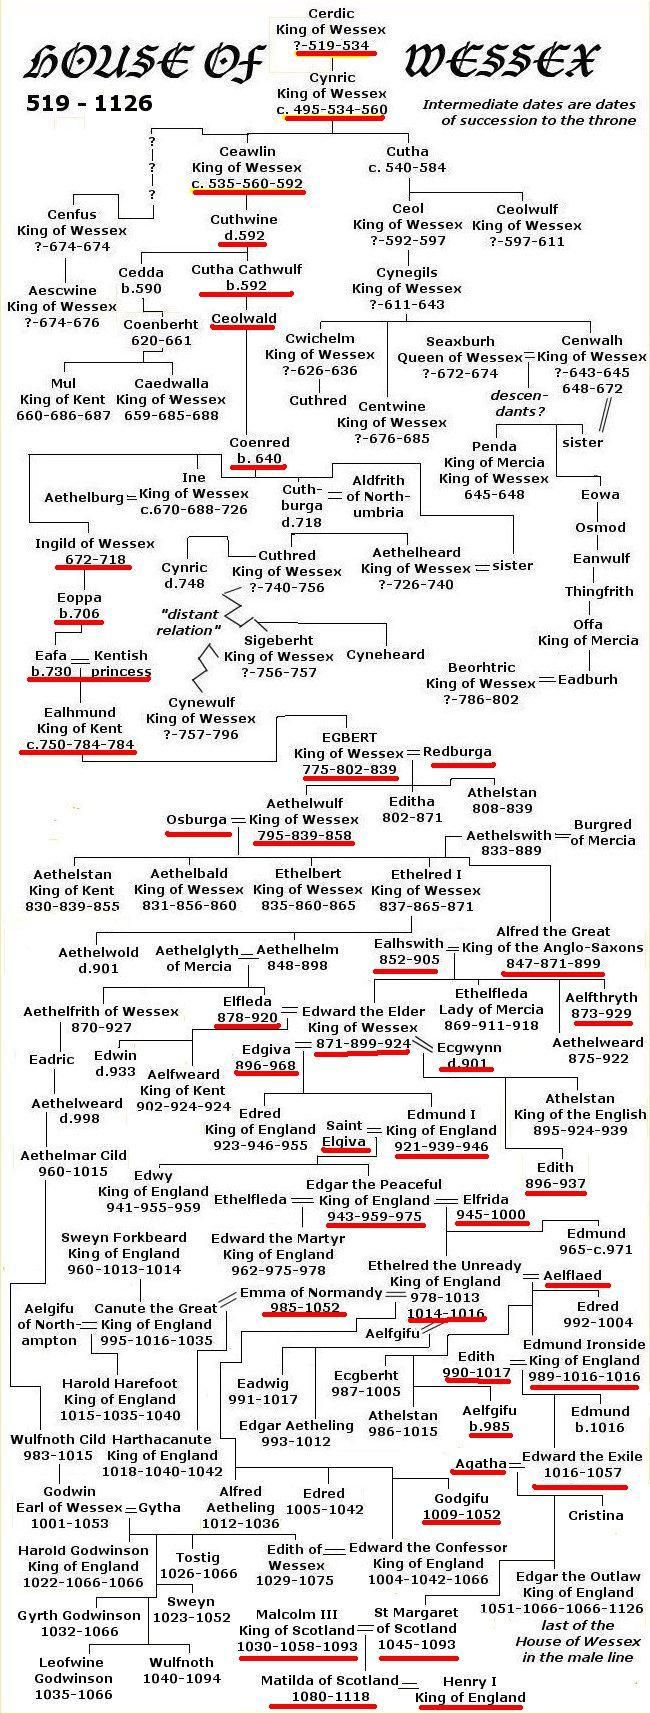 best images about history richard iii genealogy house of wessex family tree cynric king of wessex son of cerdic was king from during his reign it is said that he captured old sarum and that in 556 he